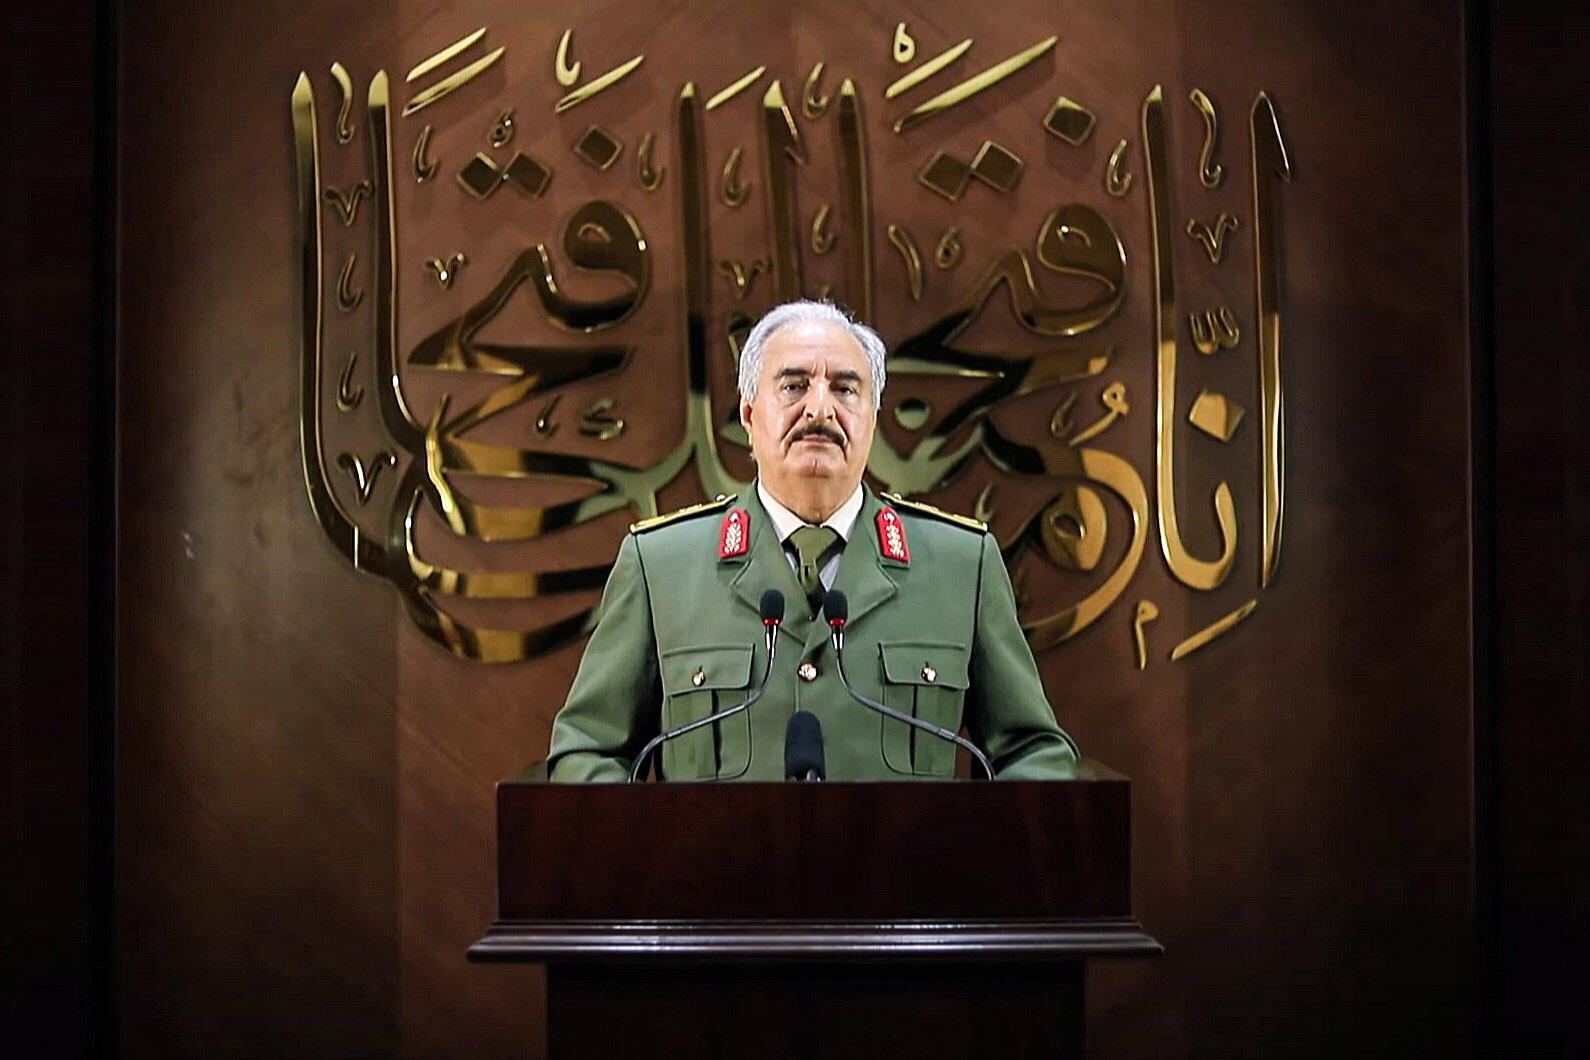 Libyan strongman Khalifa Haftar has announced he has a popular mandate to rule the divided country